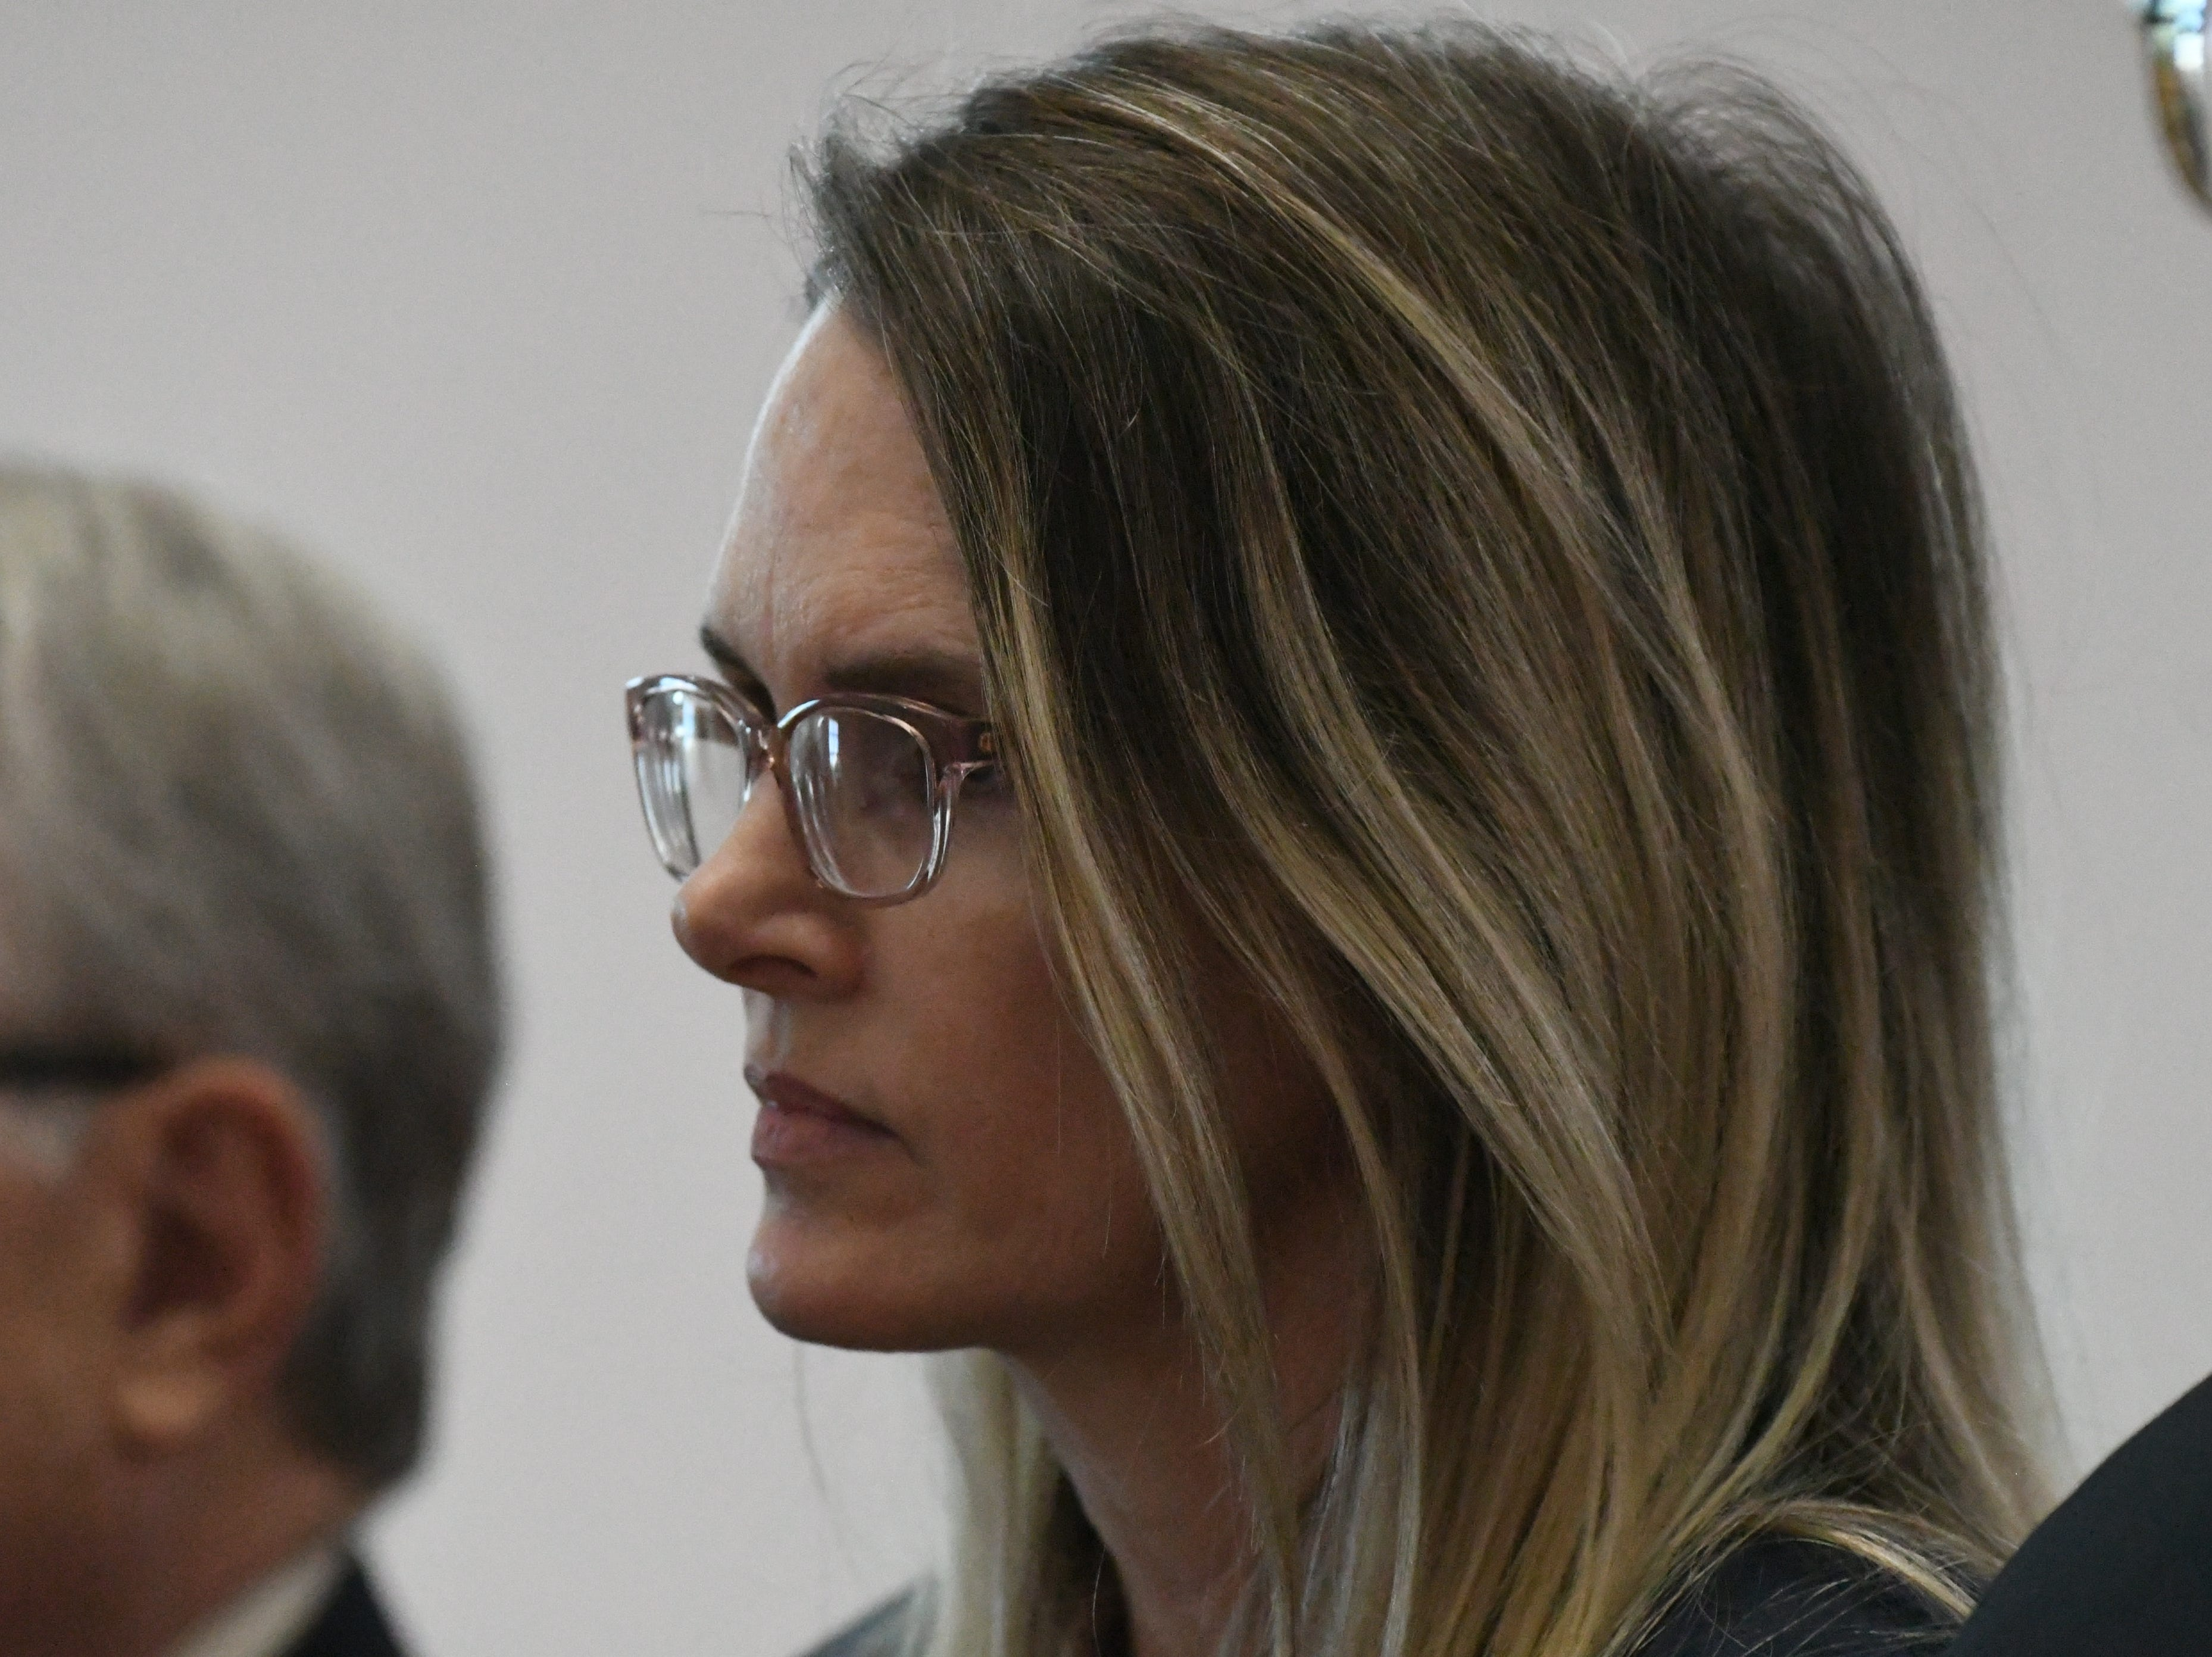 Denise Williams stand between her defense attorneys before Judge James C. Hankinson as she is sentenced for the murder of her husband Mike Williams. Williams was sentenced to life in prison plus 30 years, Wednesday Feb. 6, 2019.